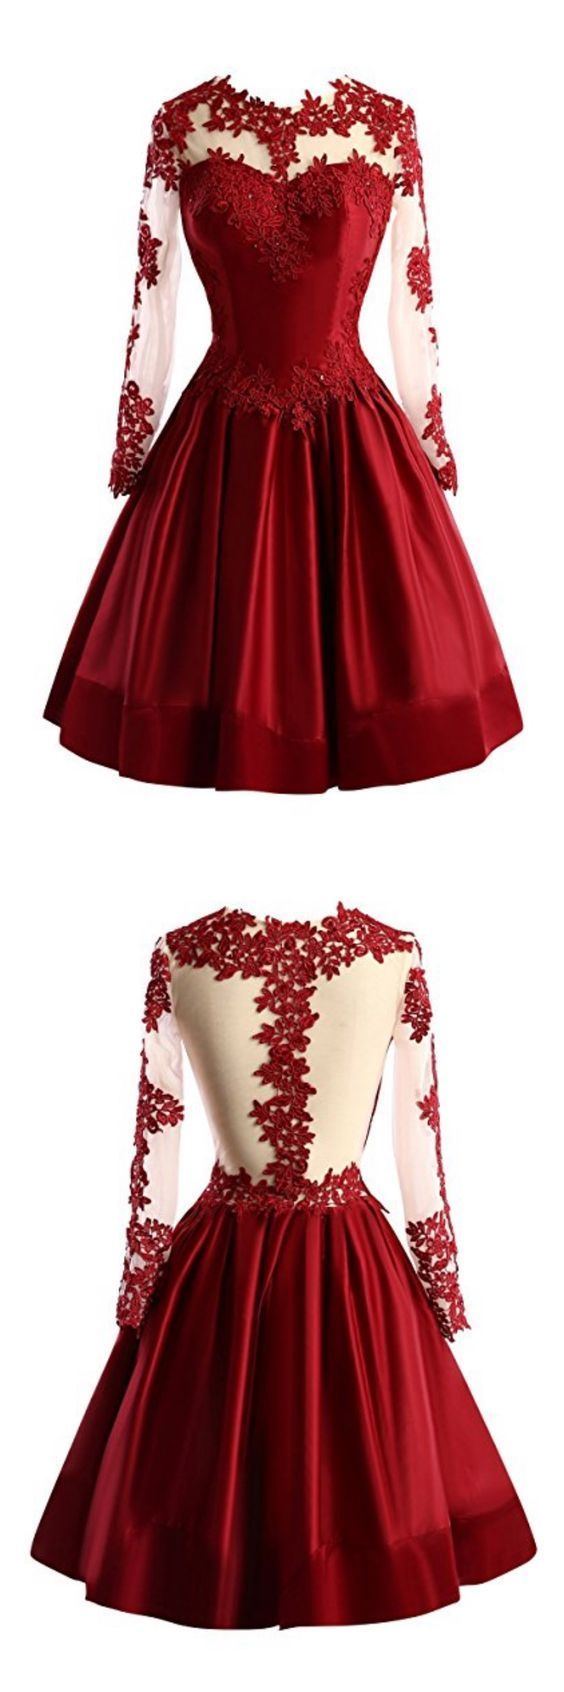 Chic scoop long sleeves homecoming dresses cheap fashion party